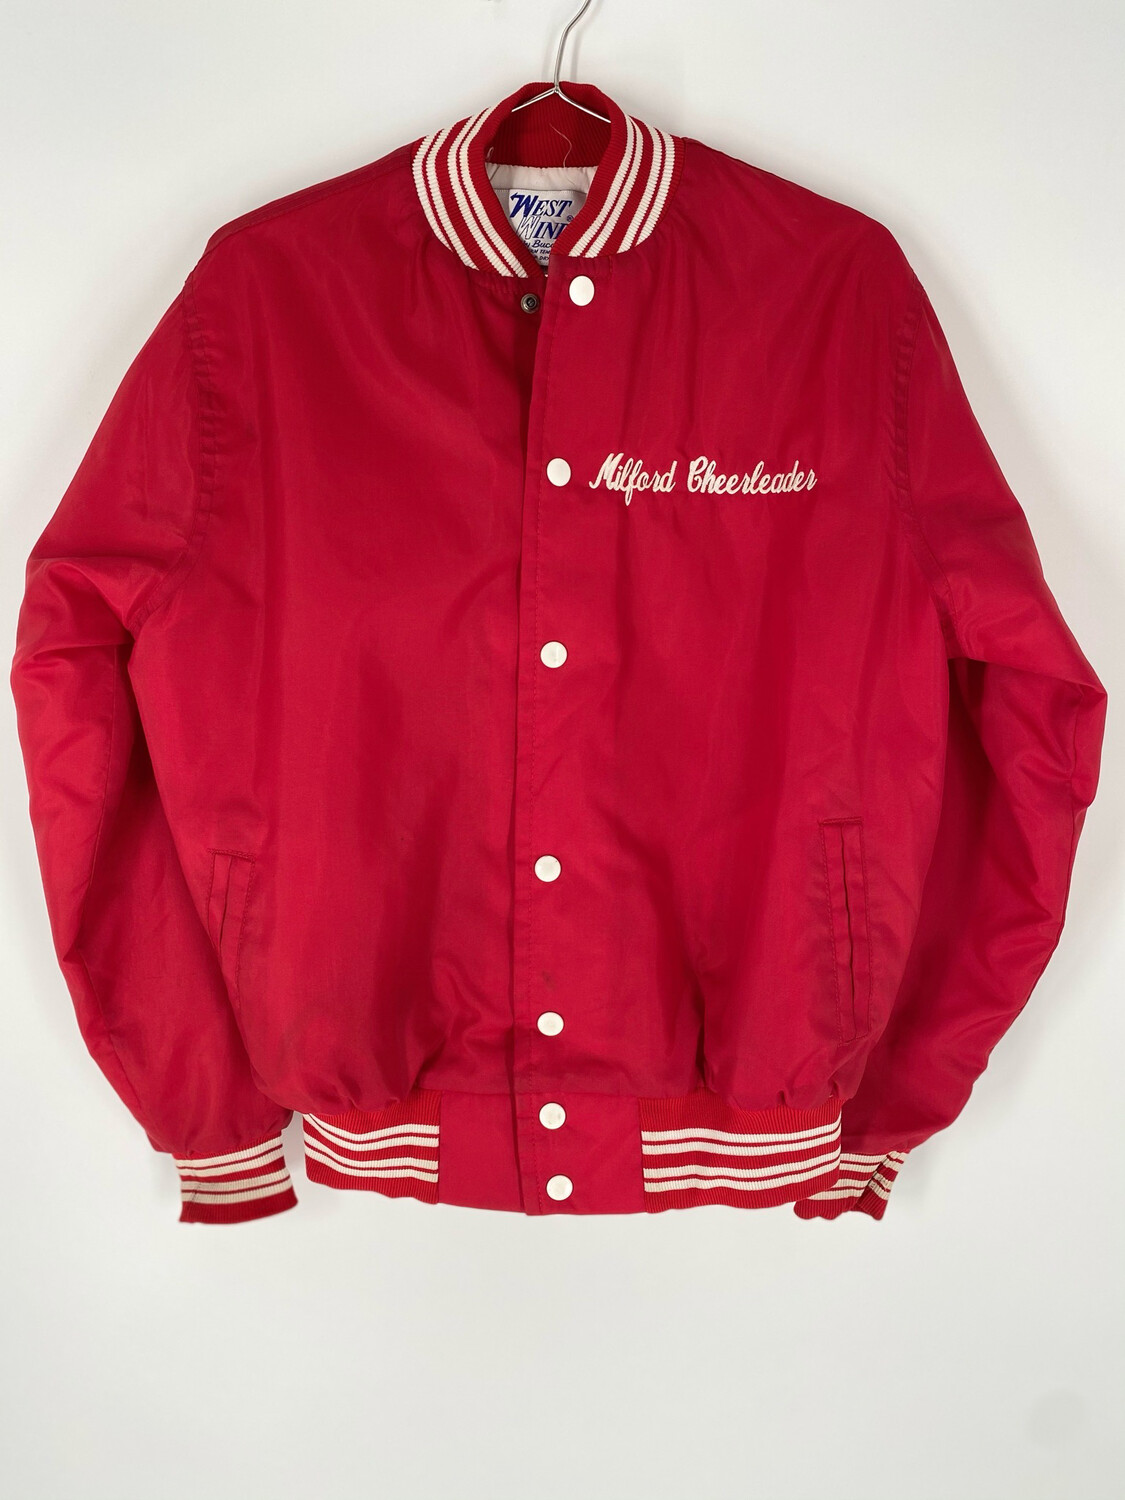 West Wind Red Embroidered Bomber Jacket Size Small